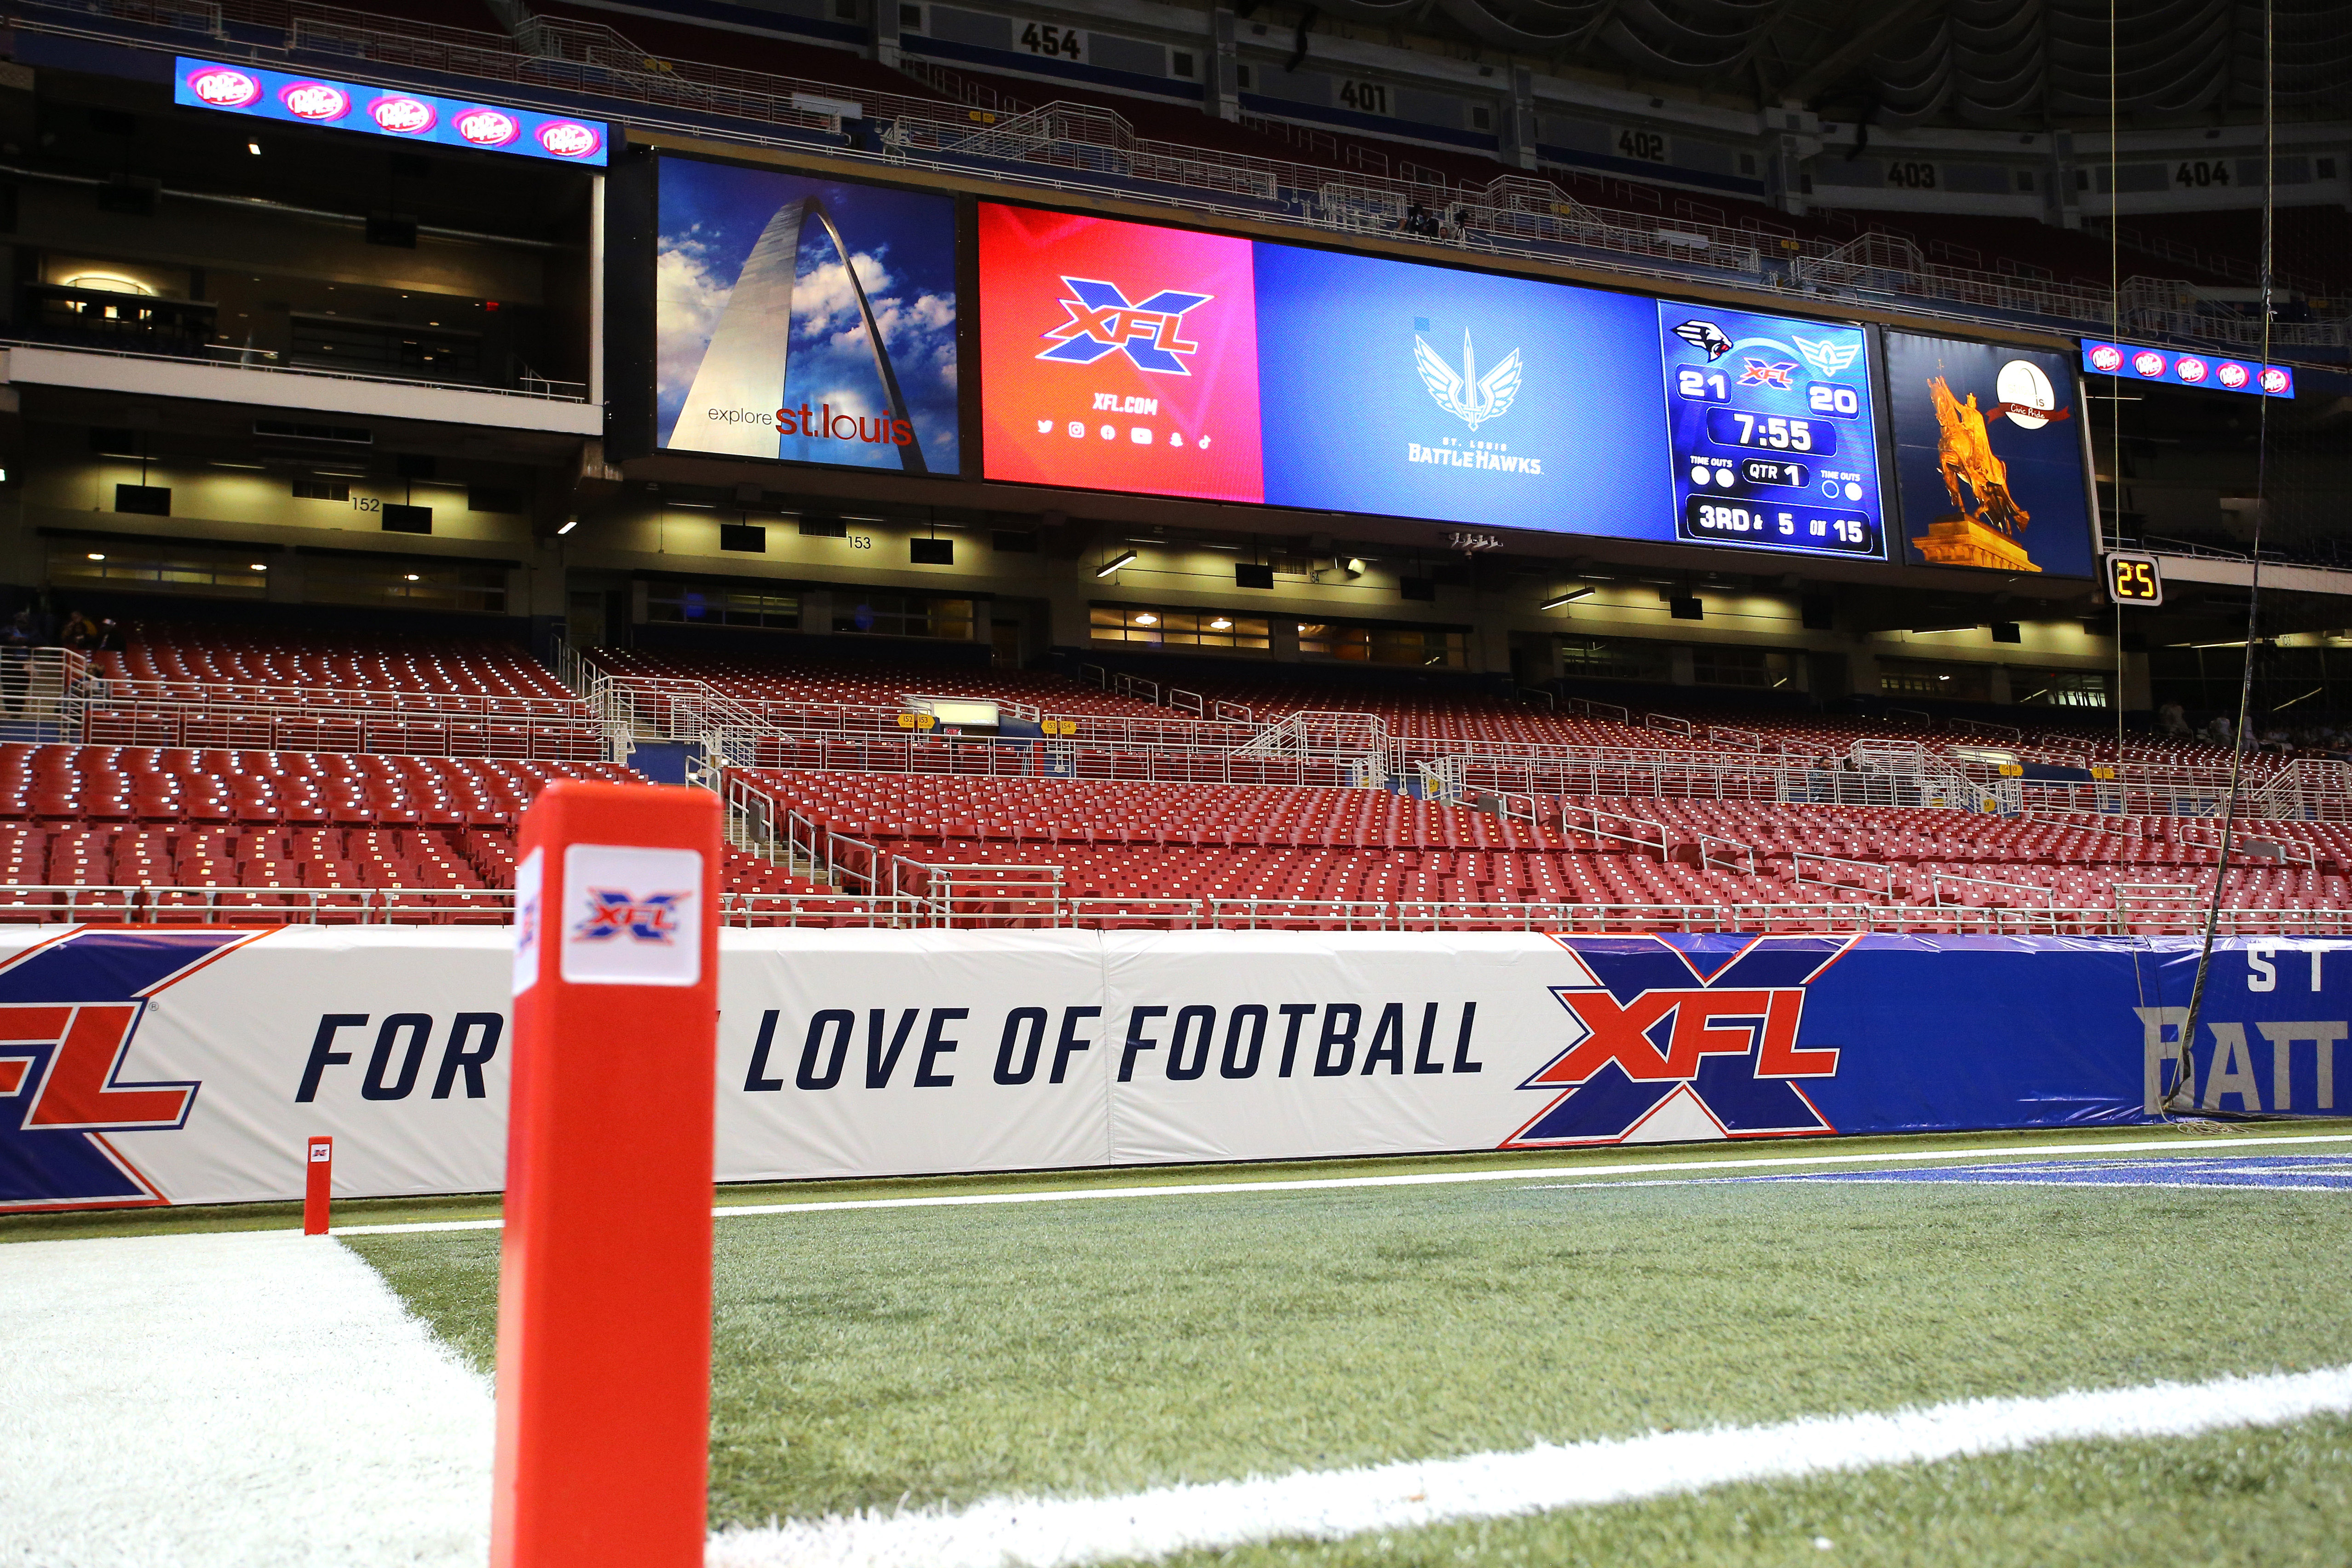 A general view of the endzone and XFL pylon prior to a game between the St. Louis Battlehawks and the NY Guardians at The Dome at America's Center.